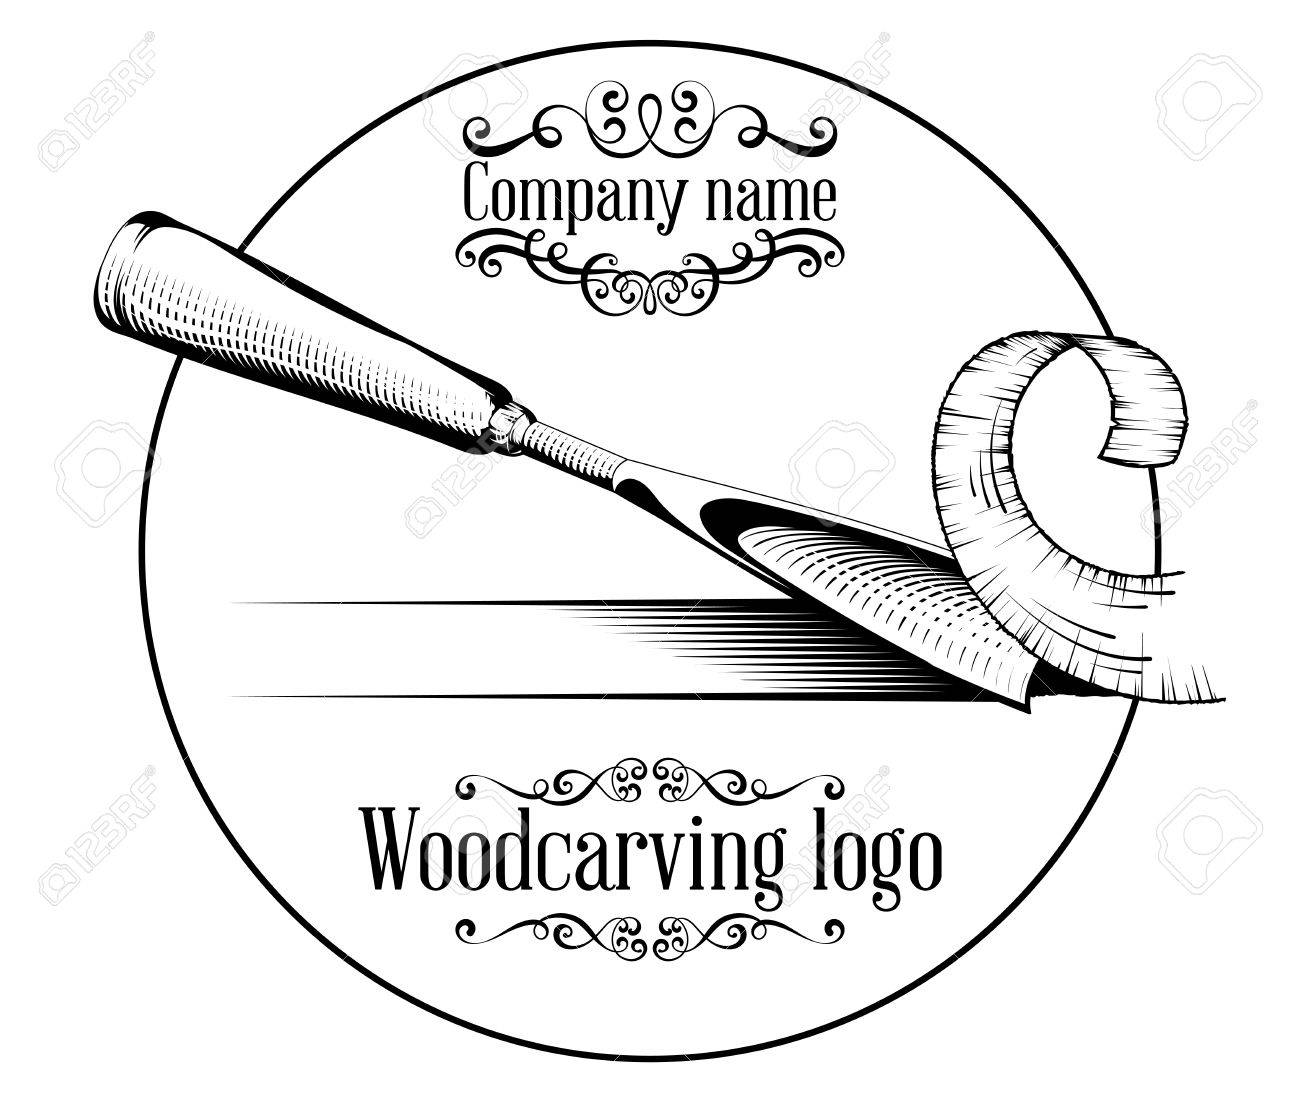 Woodcarving logotype Illustration with a chisel, cutting a wood slice, vintage style logo, black and white isolated. - 88164994